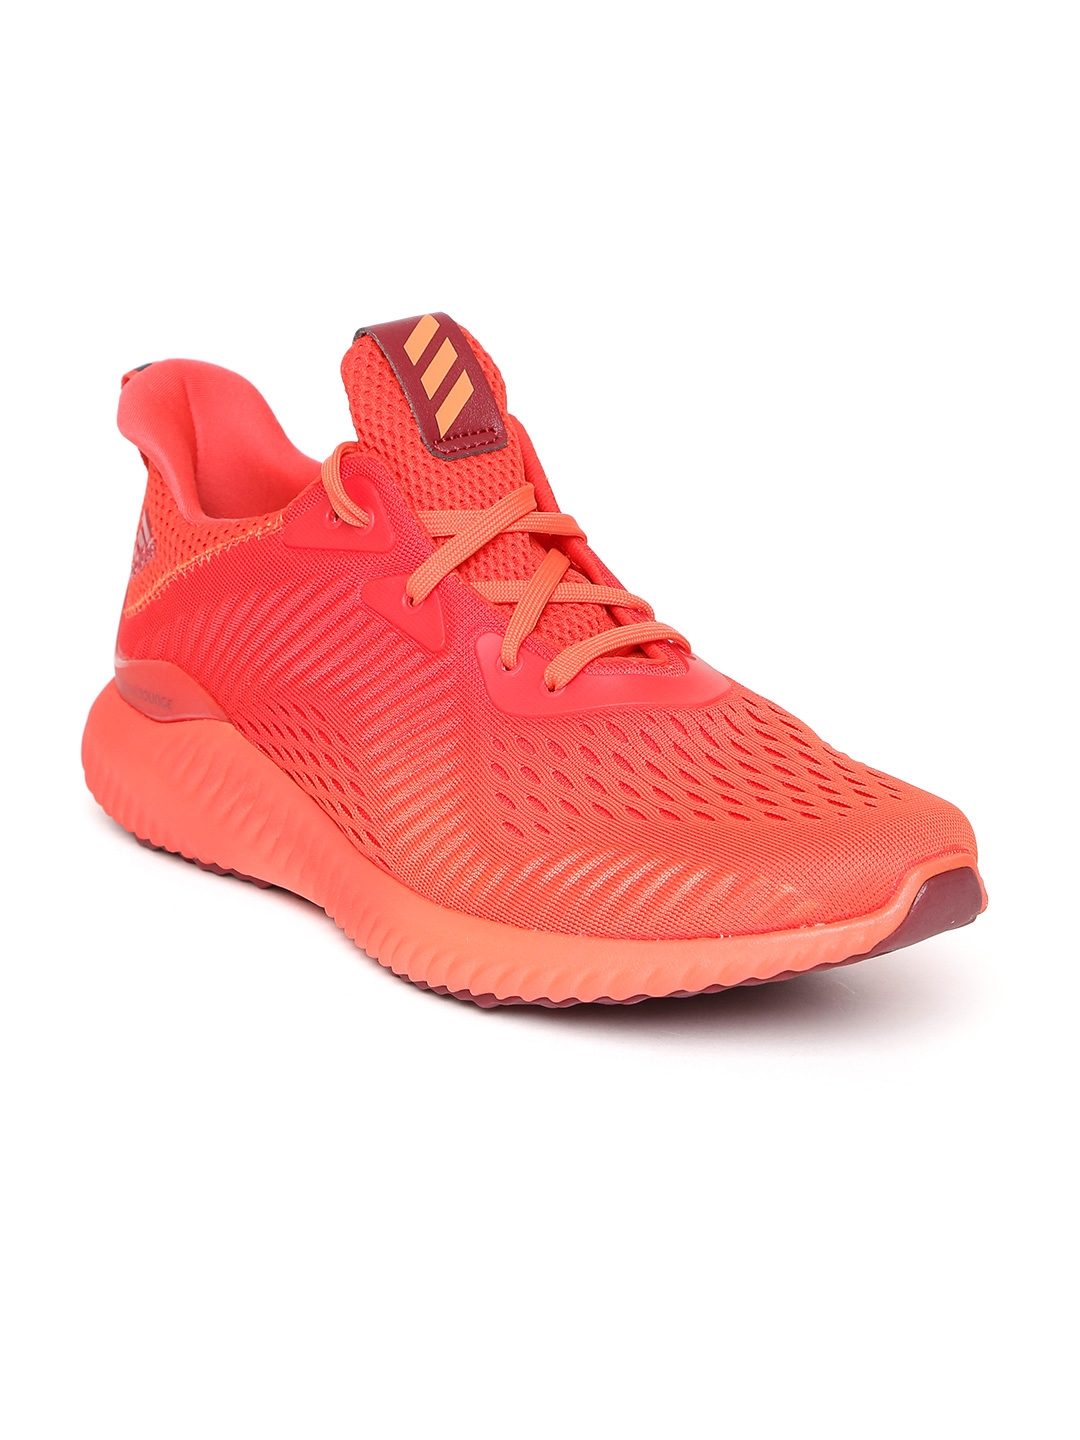 b6ae333c9 Buy ADIDAS Men Coral Red AlphaBOUNCE Engineered Mesh Running Shoes ...